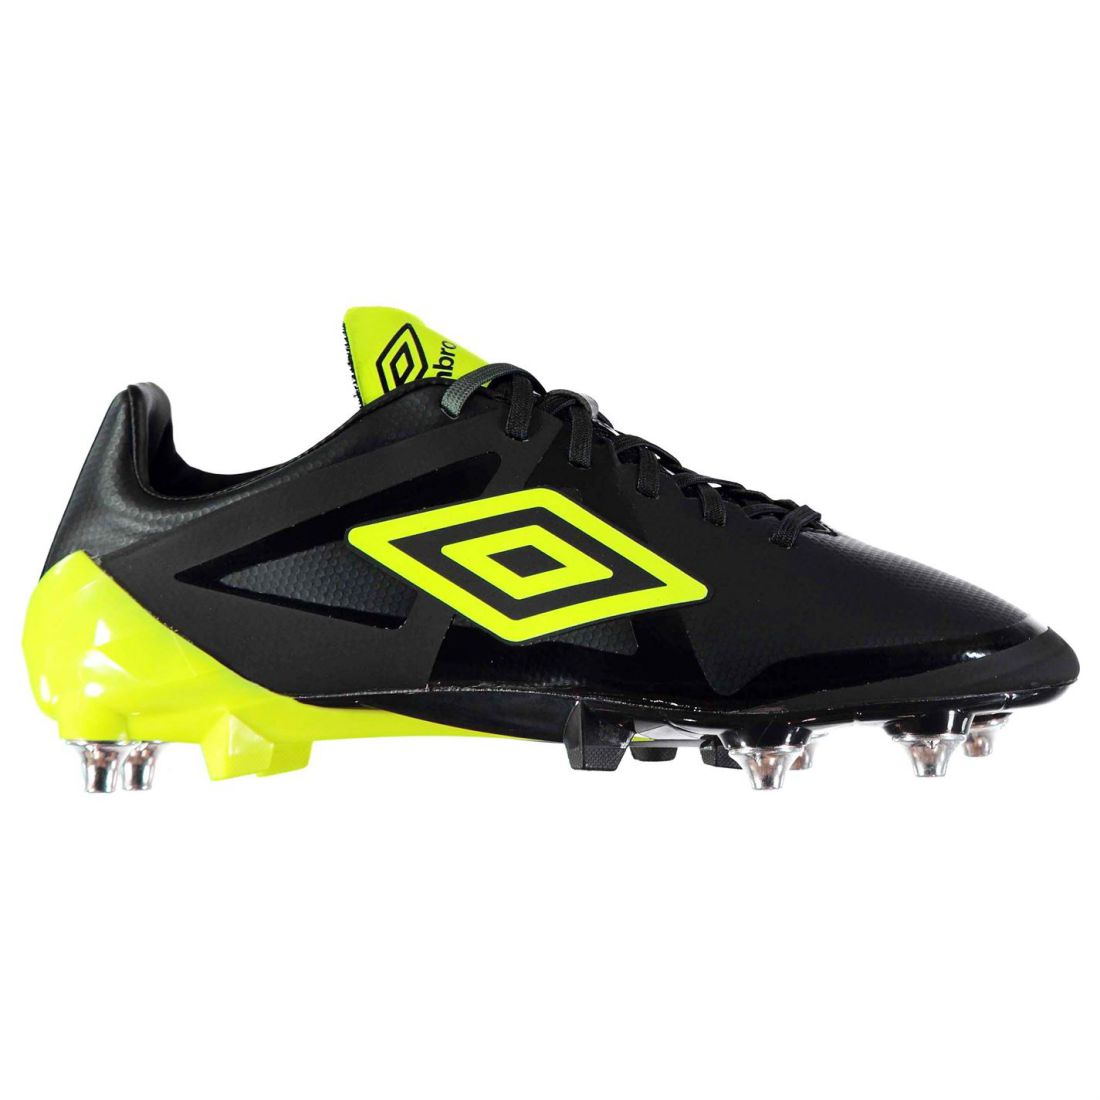 Umbro Mens Velocita Pro SG Football Boots shoes Lace Up Synthetic Upper Studs